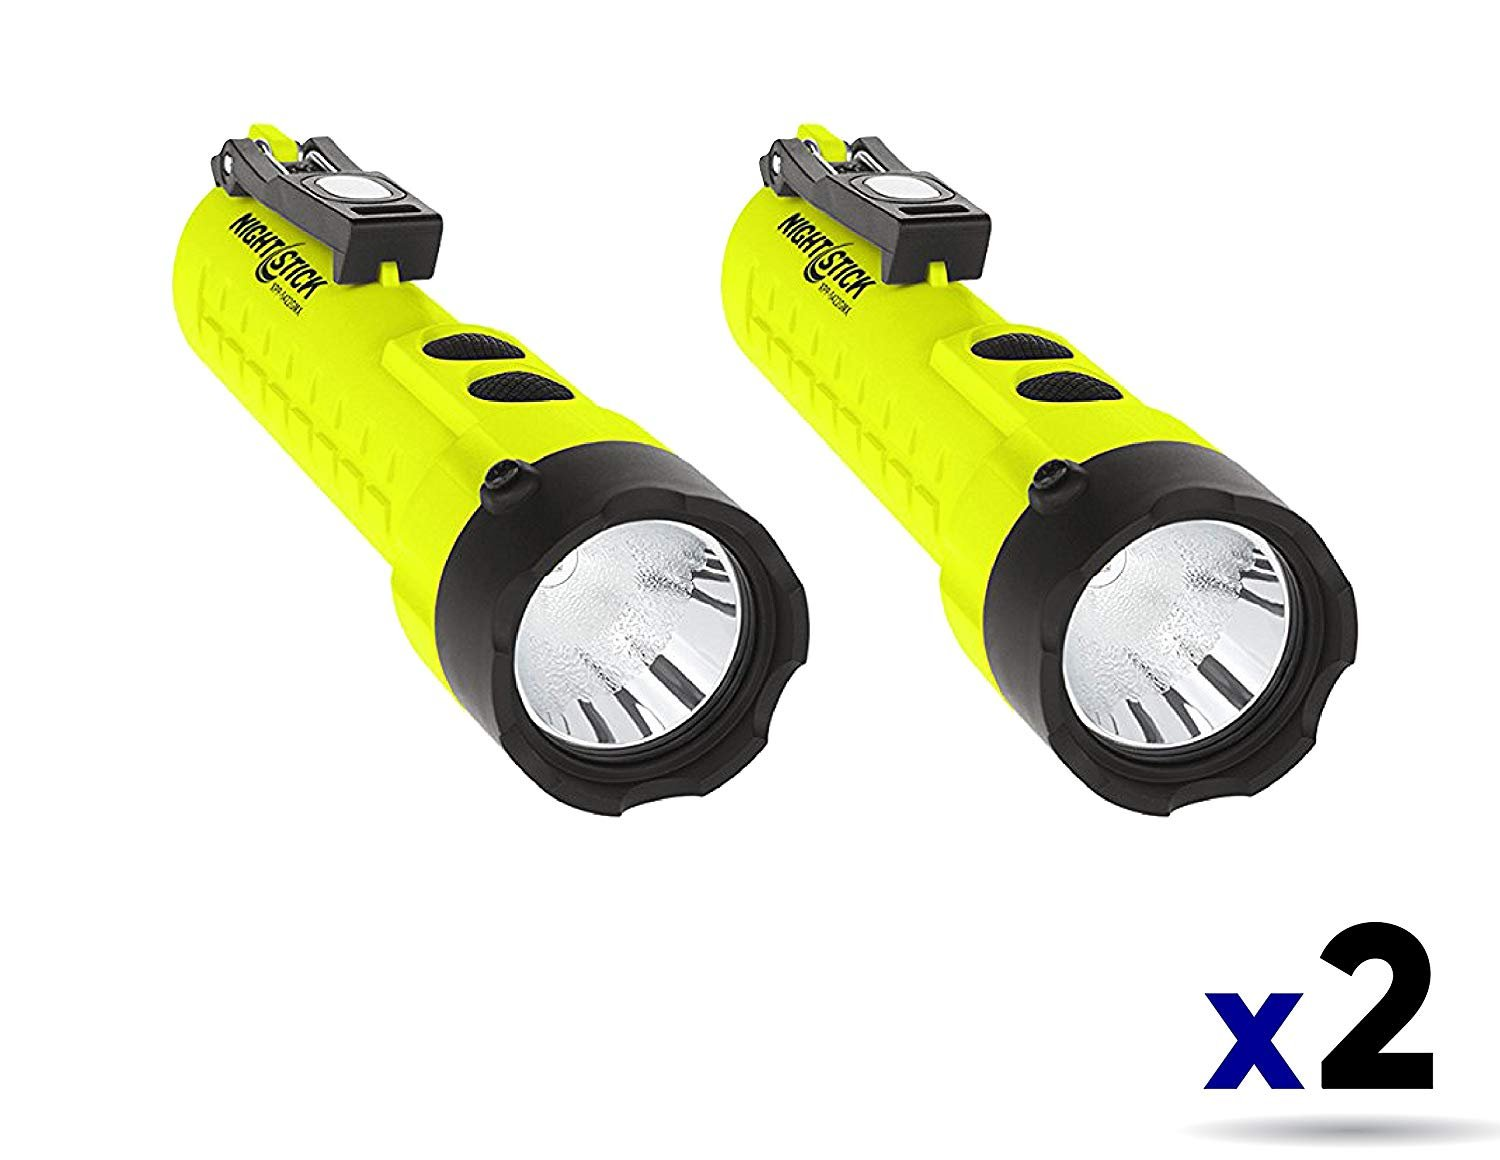 Nightstick XPP-5422GMX X-Series Intrinsically Safe Dual-Light Flashlight with Dual Magnets Green/Black (2 Pack)